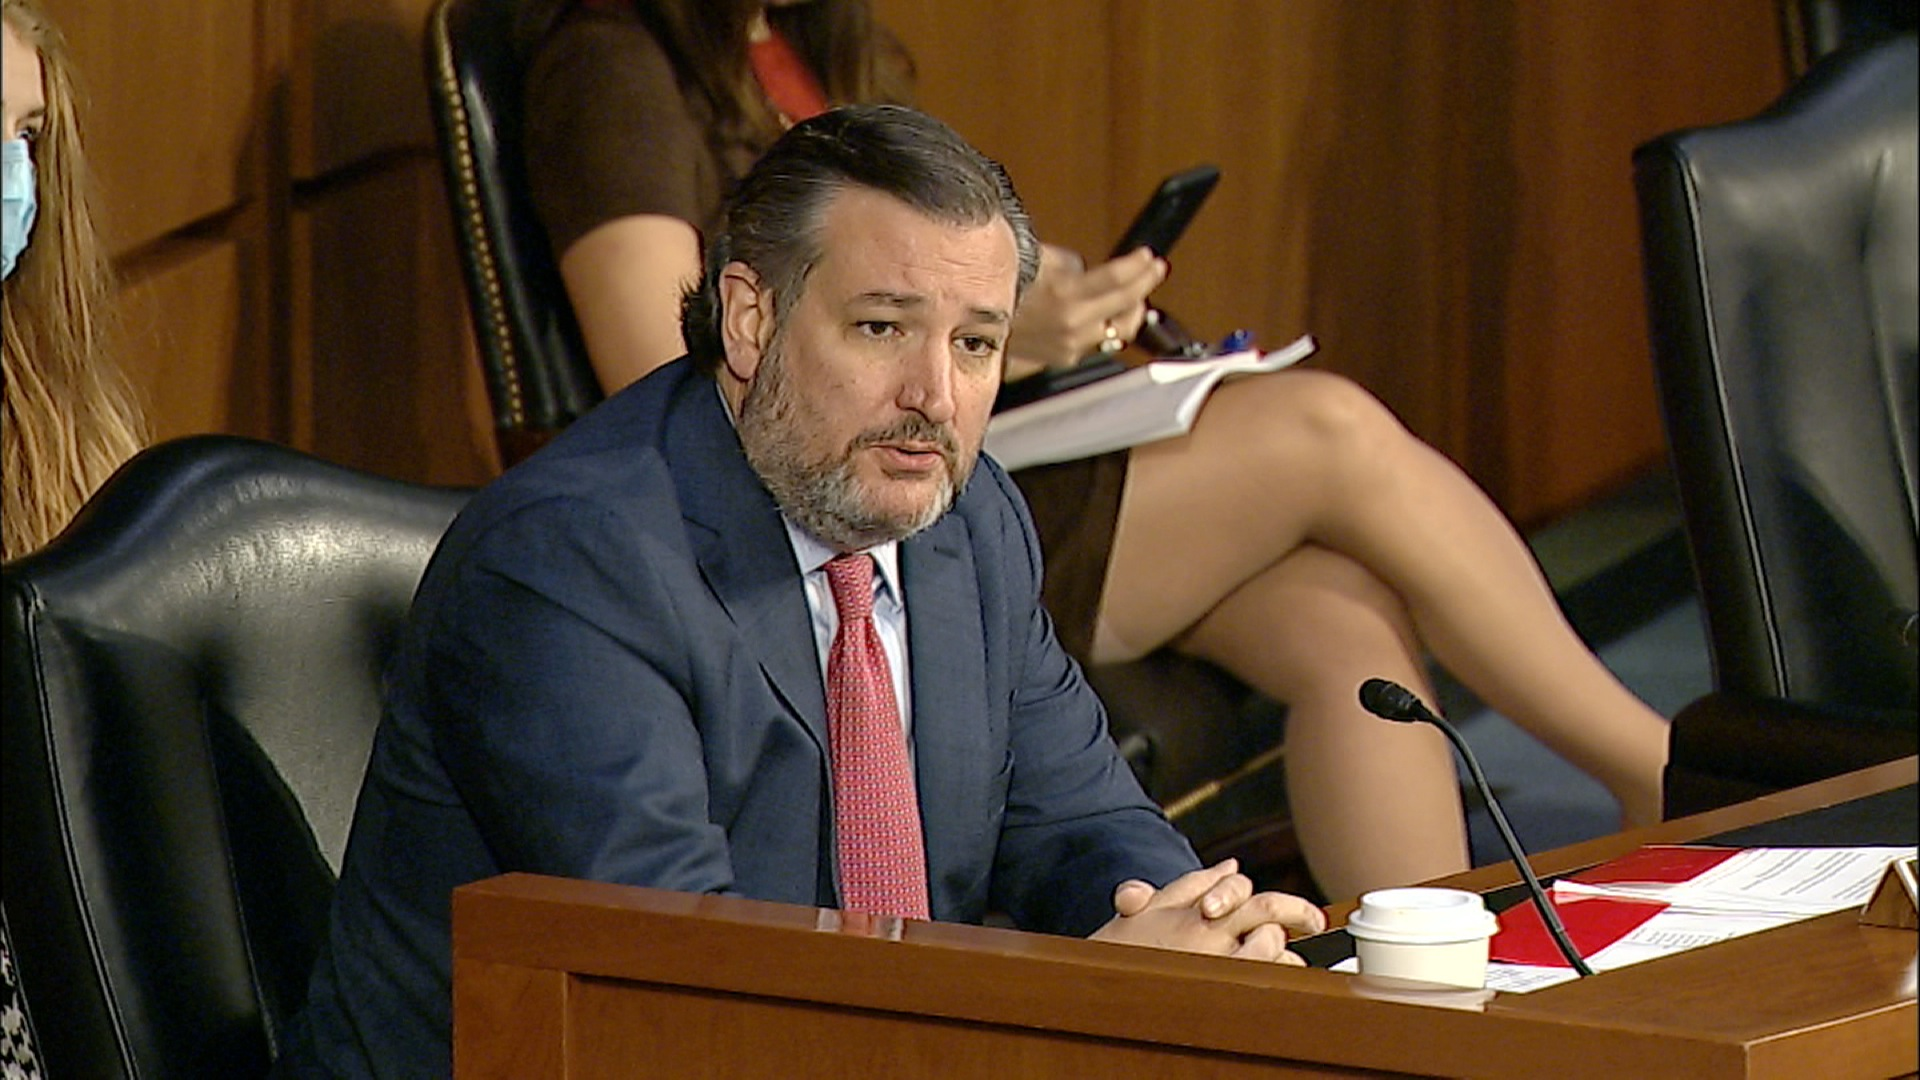 Texas Senator Ted Cruz speaks during a hearing on gun violence in Washington, DC, on March 23.